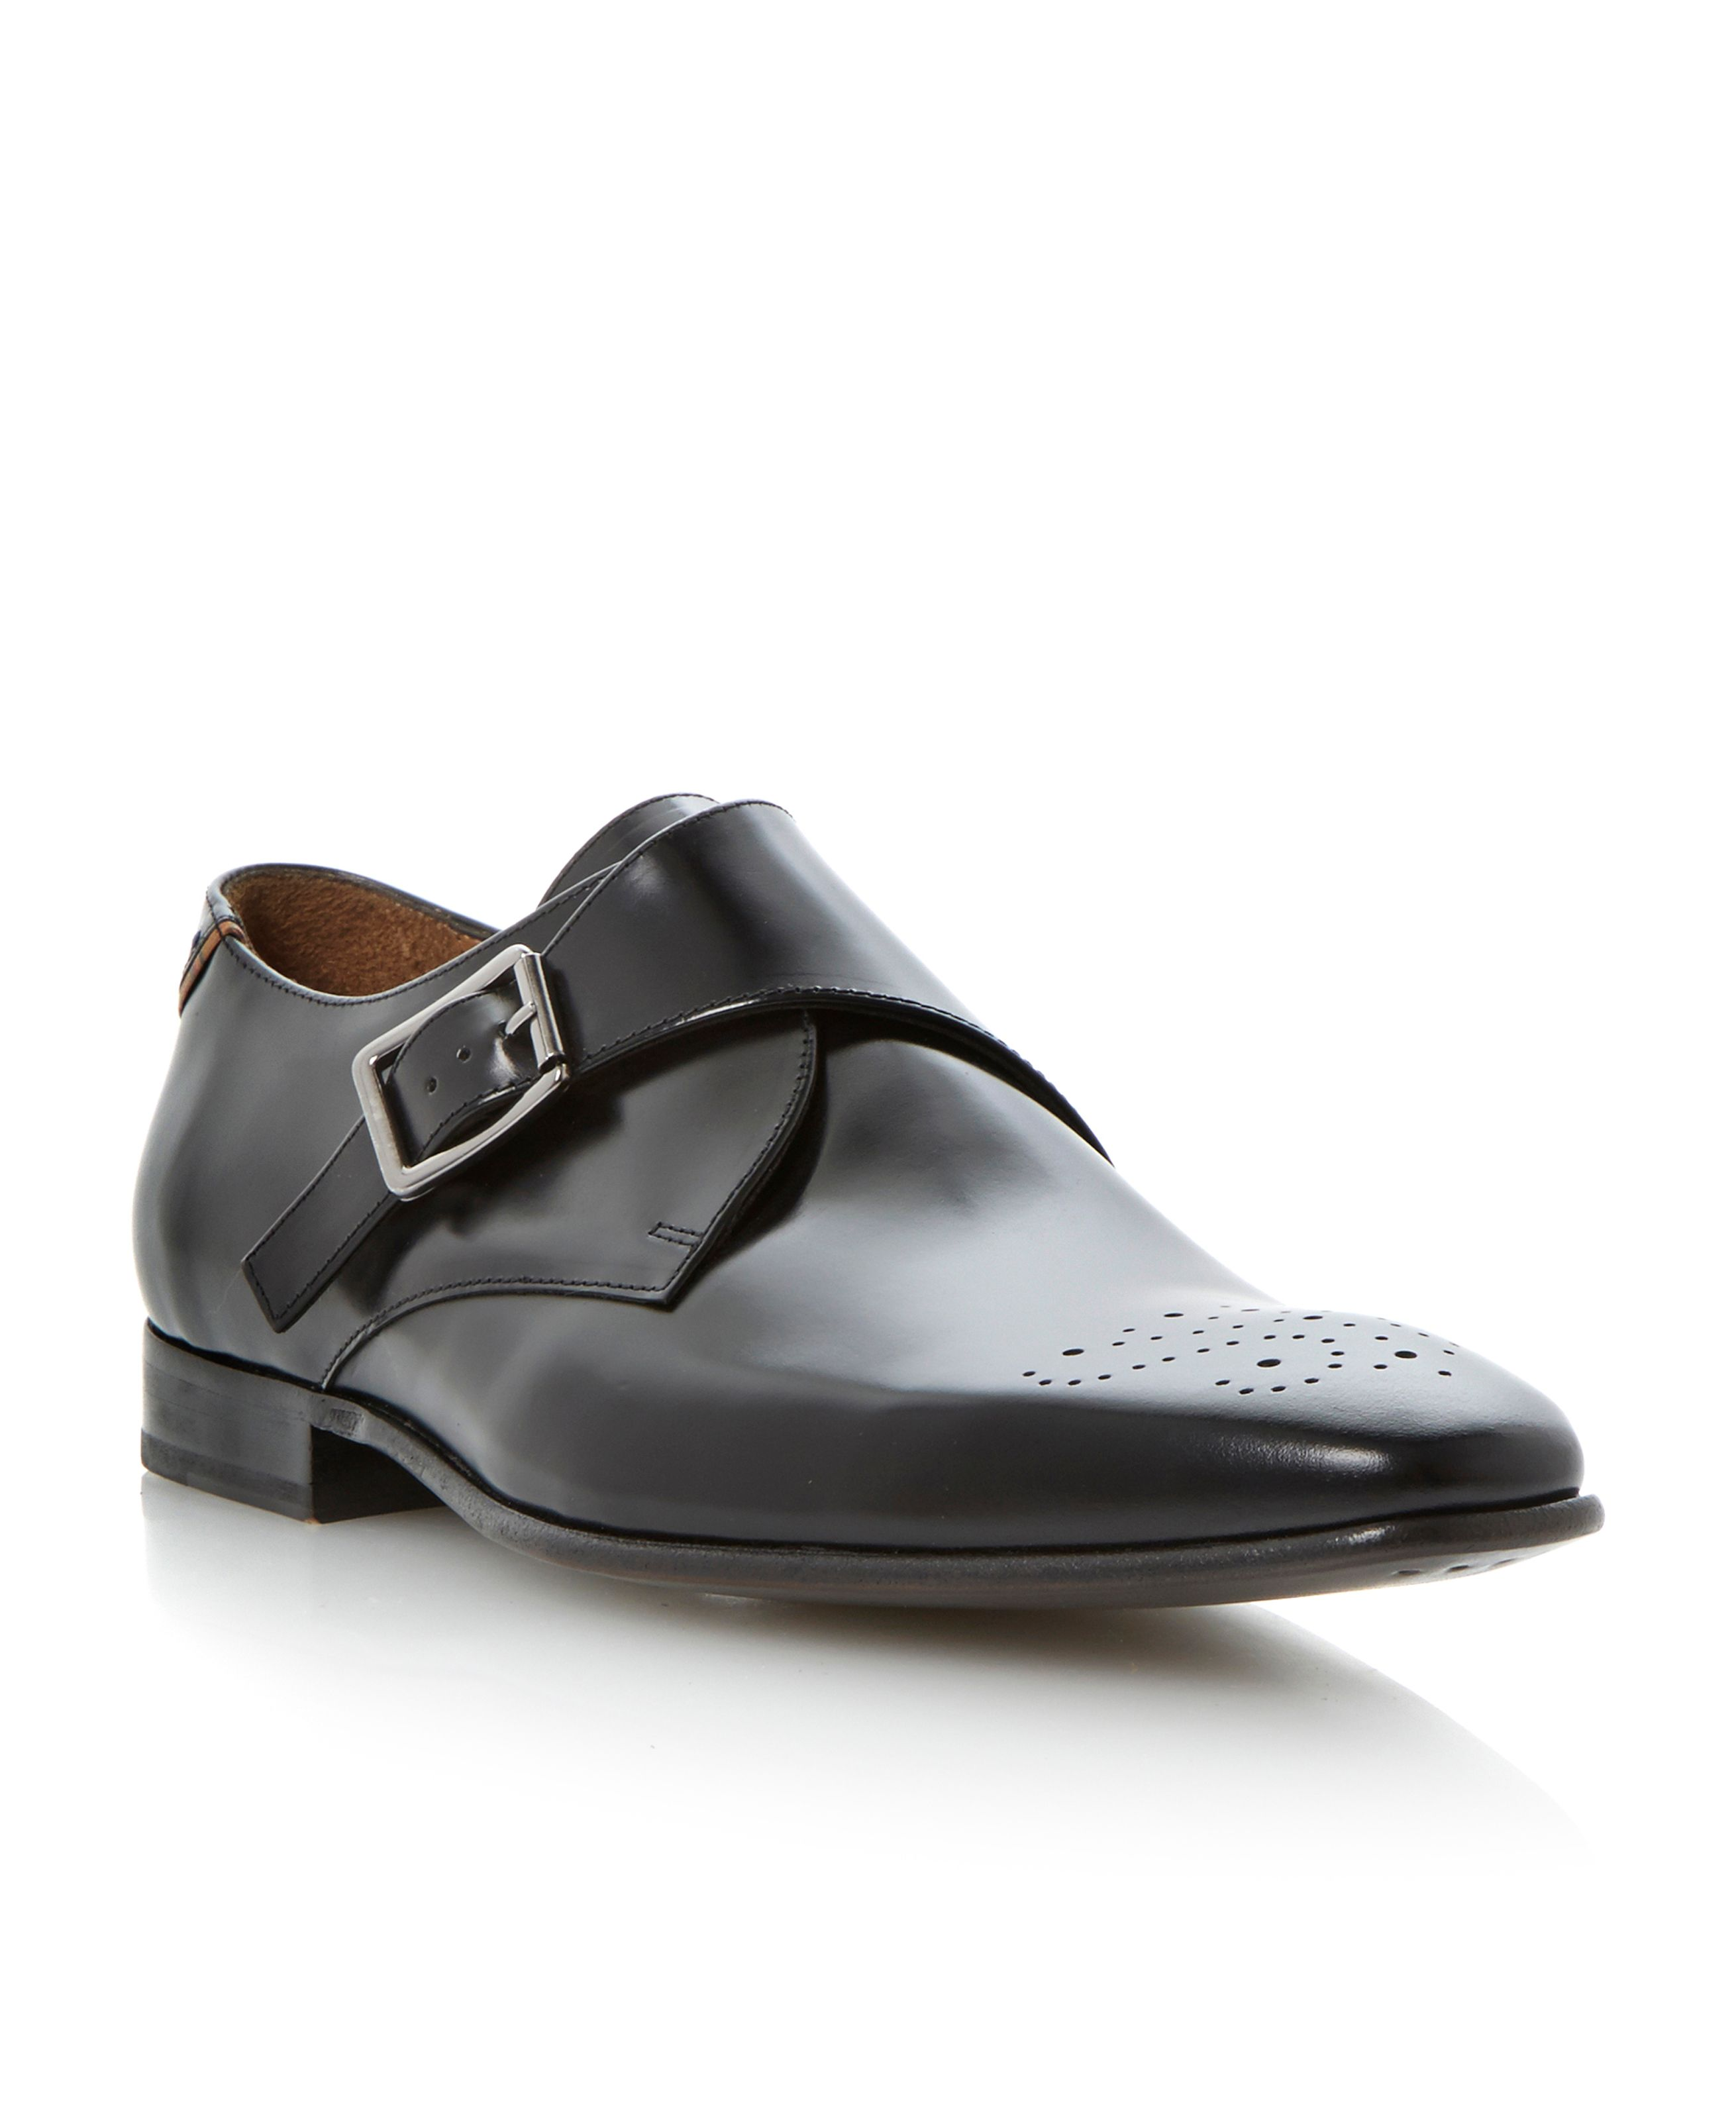 Wren buckle brogue detail monk shoes